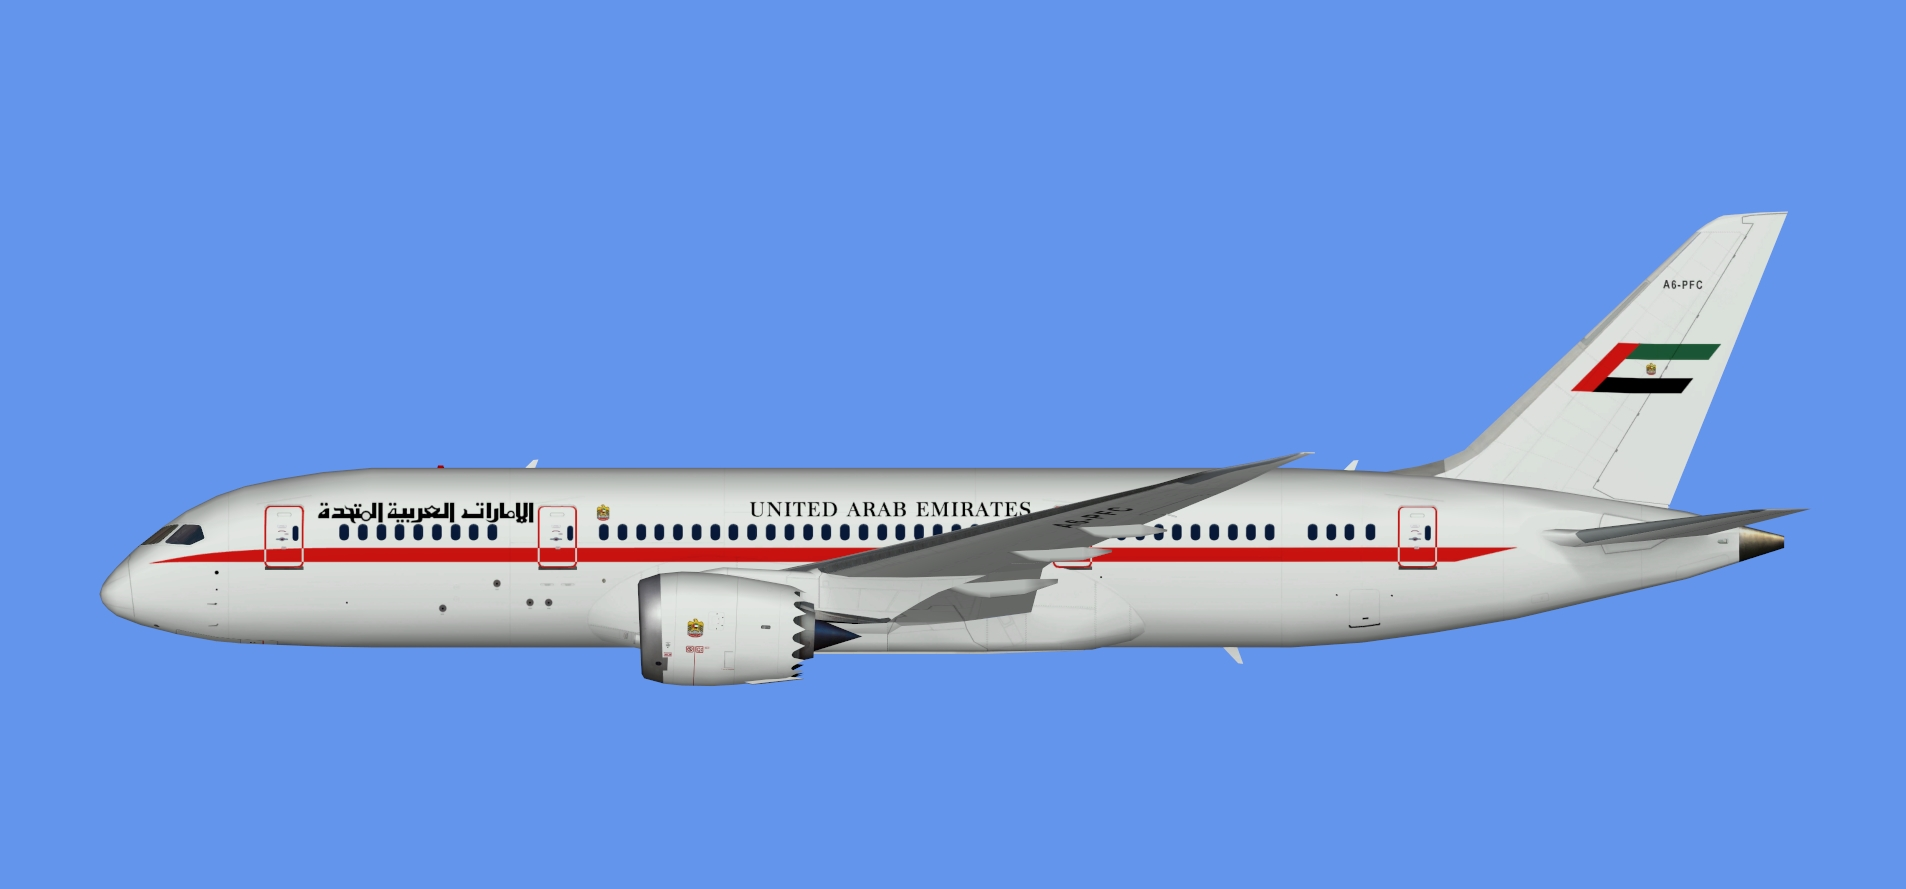 UAE Presidential Flight 787-8 (UTT)